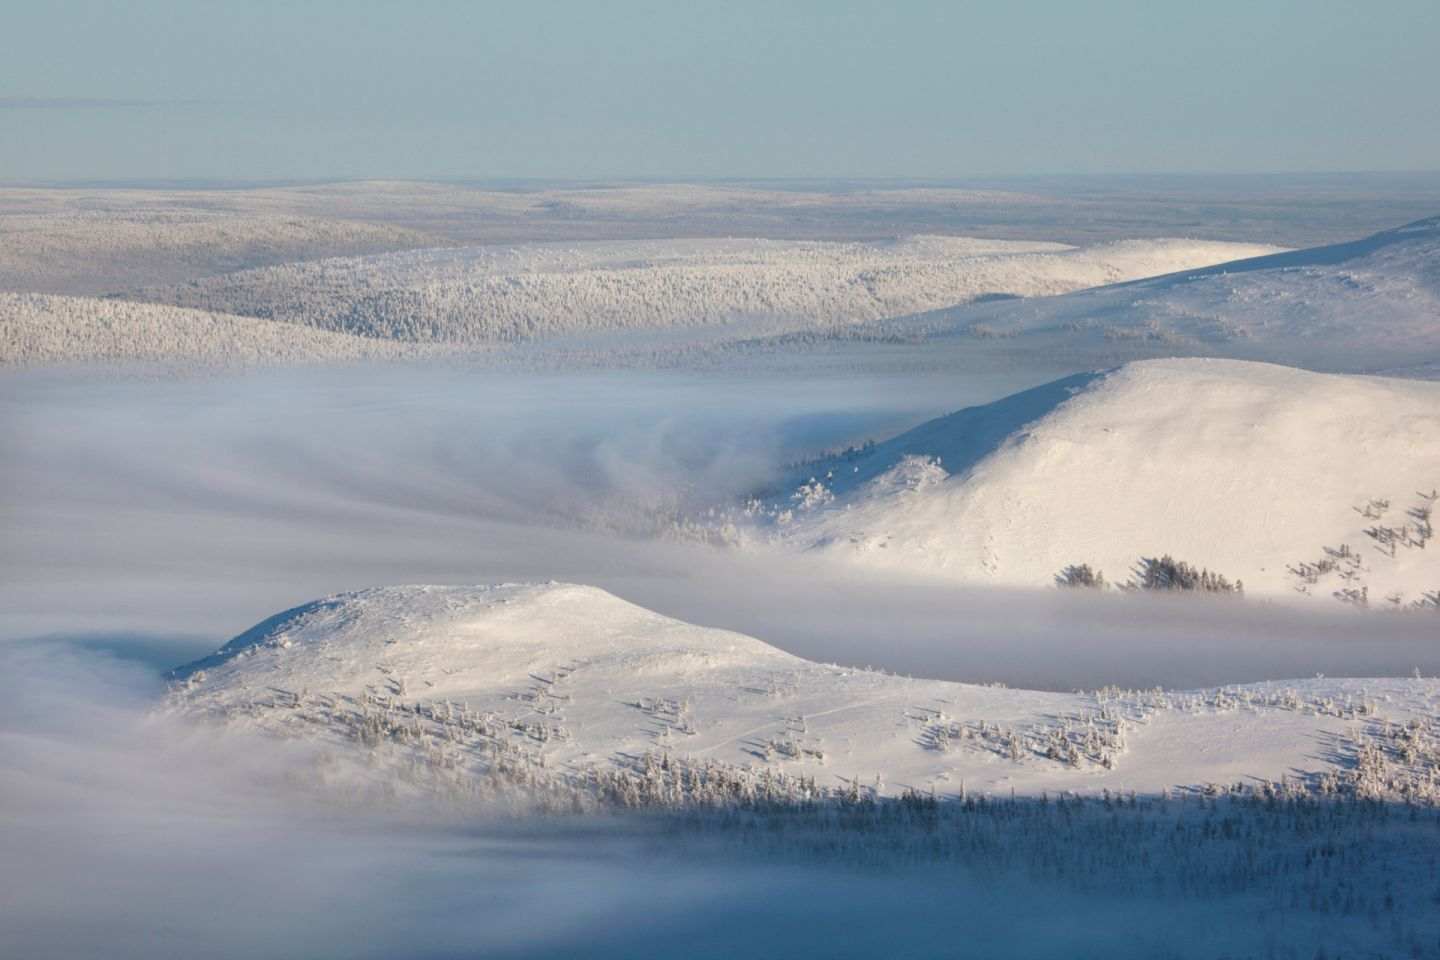 Mist in the valleys of the Ylläs-Pallastunturi National Park